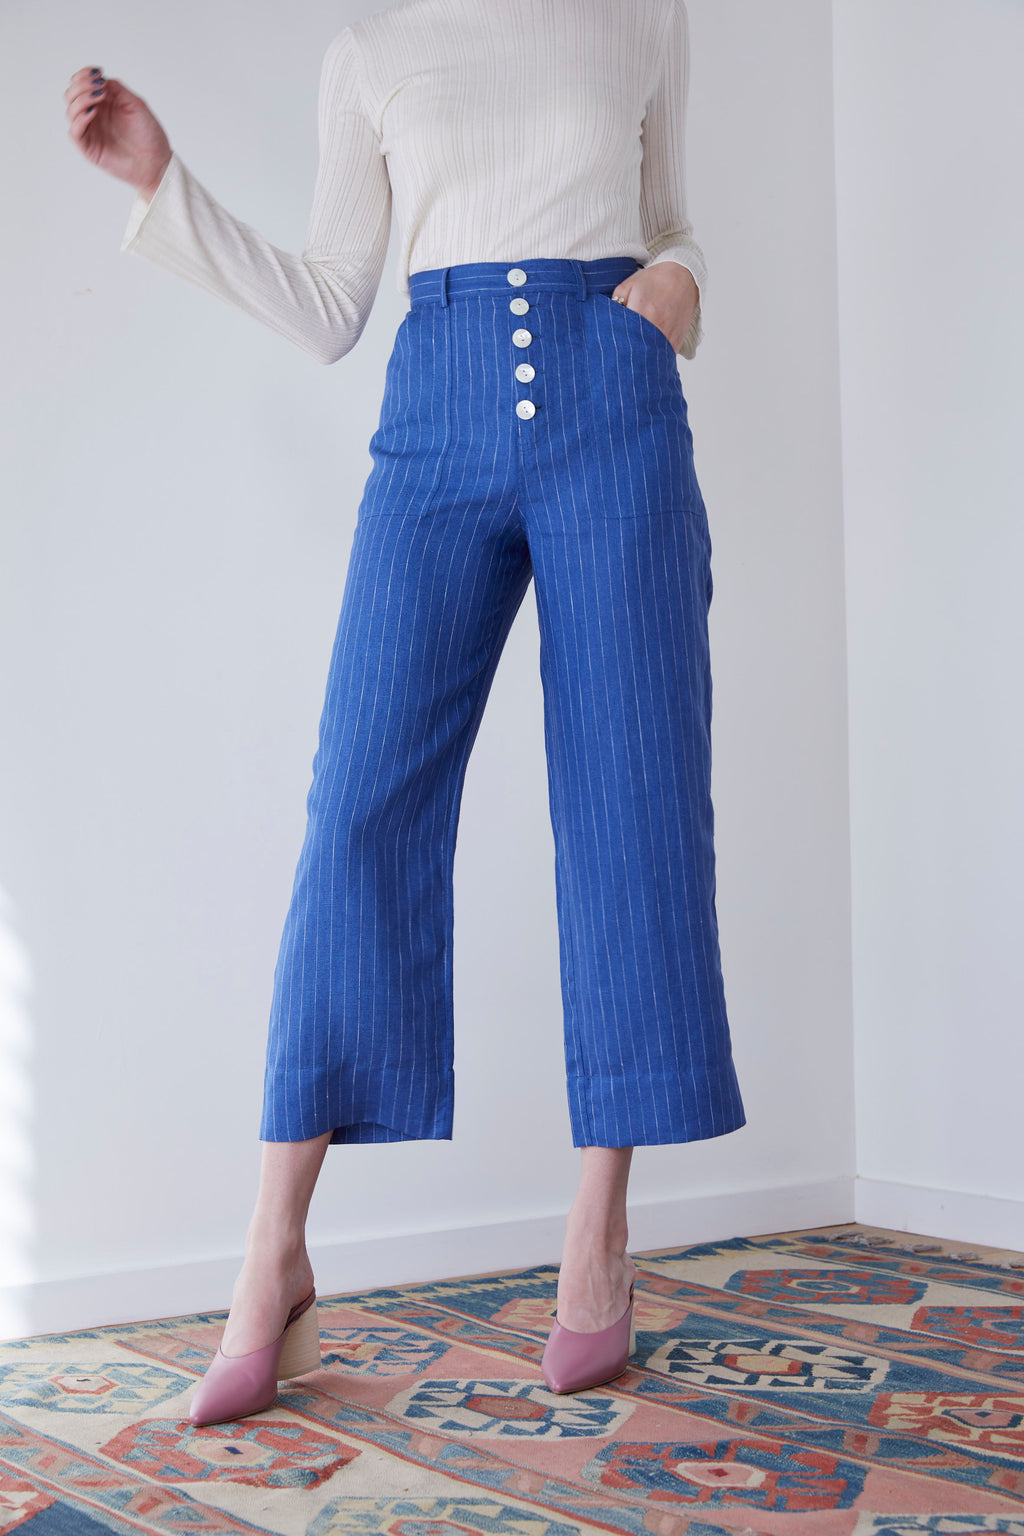 Fancy Pants in Stripe - hej hej